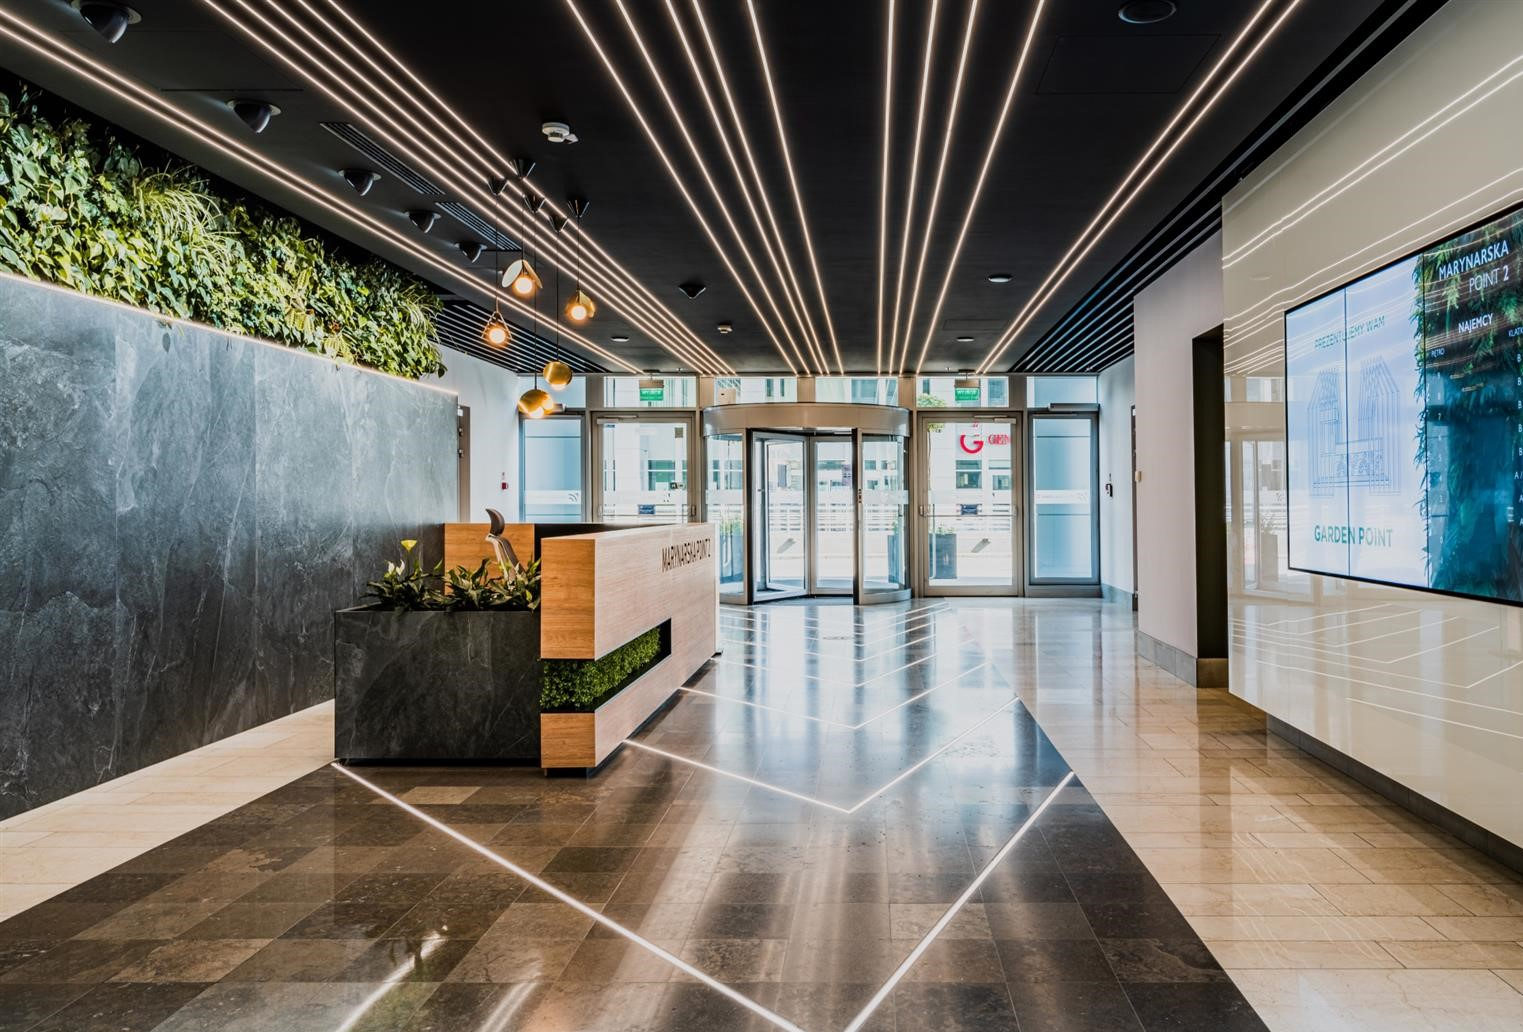 A green wall in reception welcomes visitors to Marynarska Point 2 in Warsaw, Poland